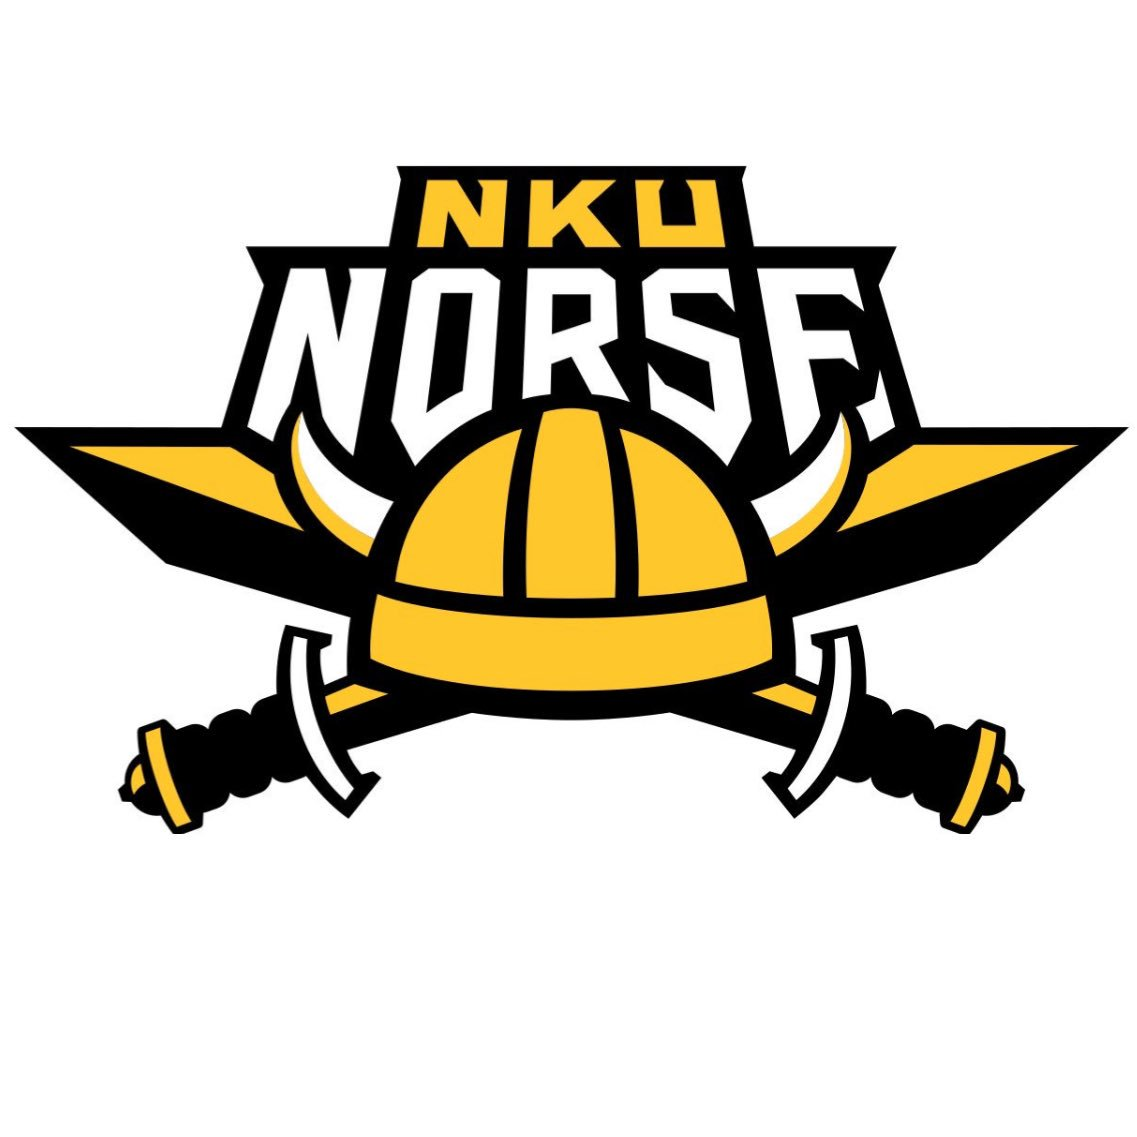 Extremely blessed to have received my first D1 offer from Northern Kentucky University!